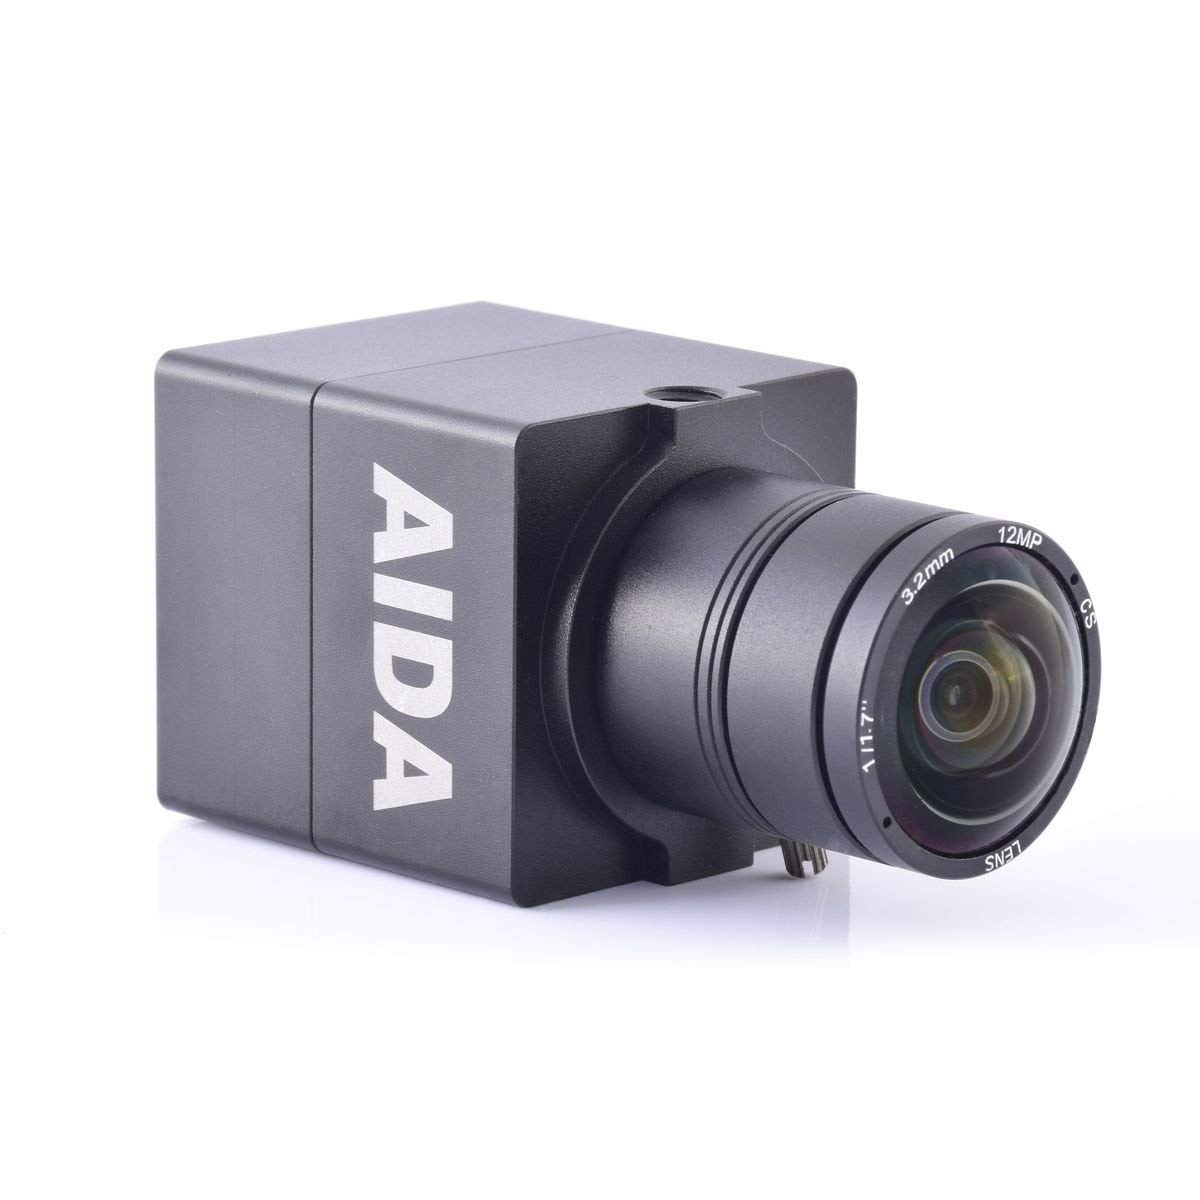 AIDA UHD 4K/30 HDMI POV Camera by AIDA